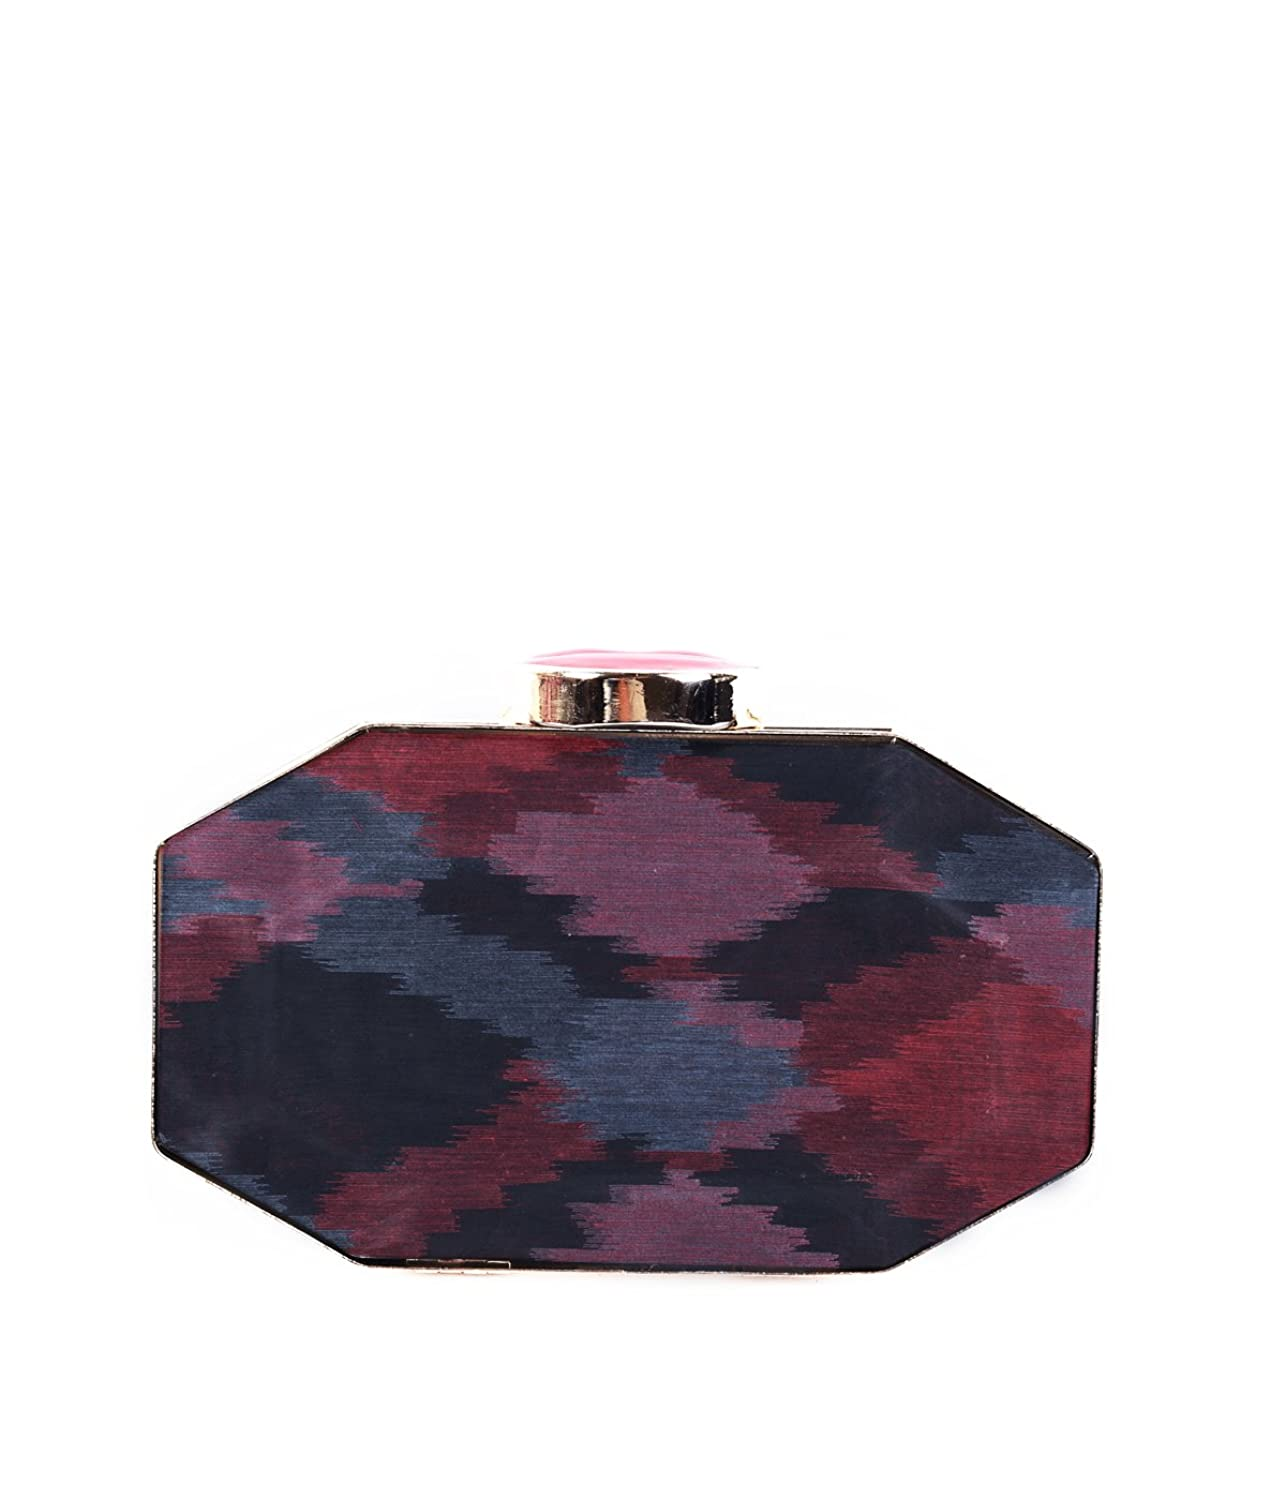 Cotton Red Ikat Print Metal Women Clutch